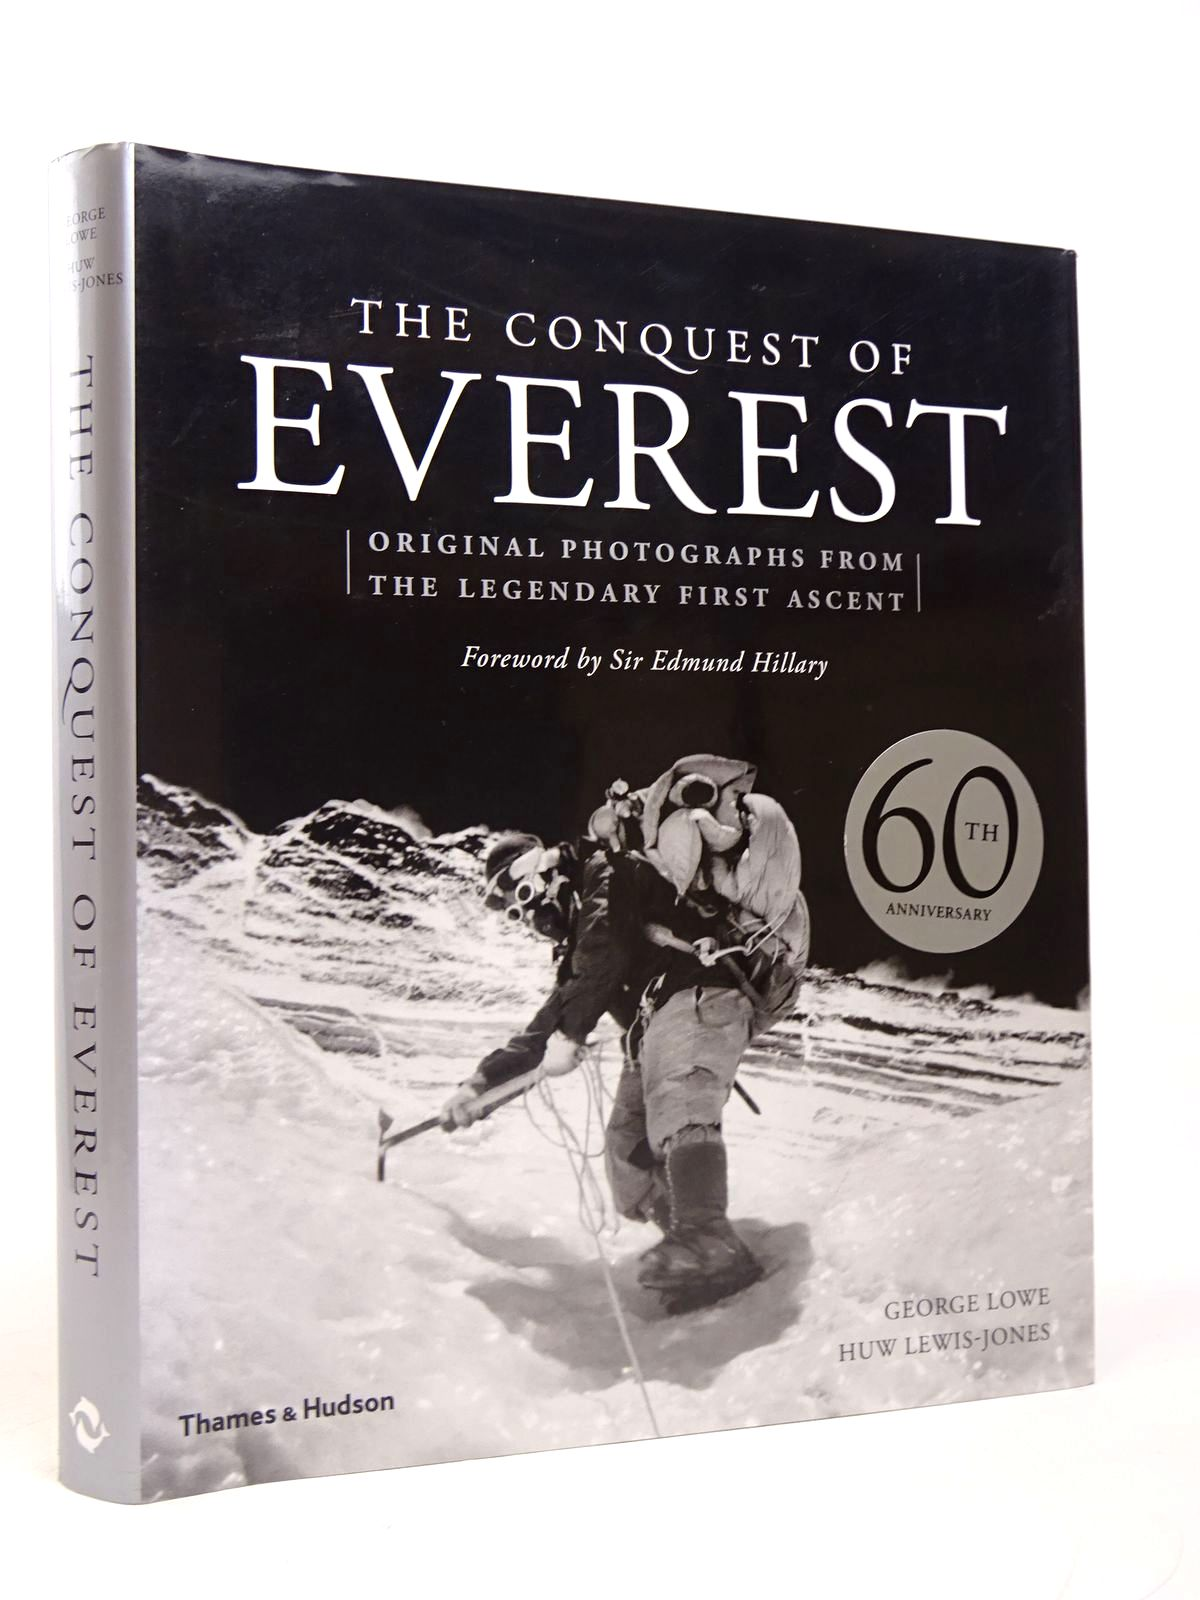 Photo of THE CONQUEST OF EVEREST: ORIGINAL PHOTOGRAPHS FROM THE LEGENDARY FIRST ASCENT written by Lowe, George<br />Lewis-Jones, Huw published by Thames and Hudson (STOCK CODE: 1817692)  for sale by Stella & Rose's Books